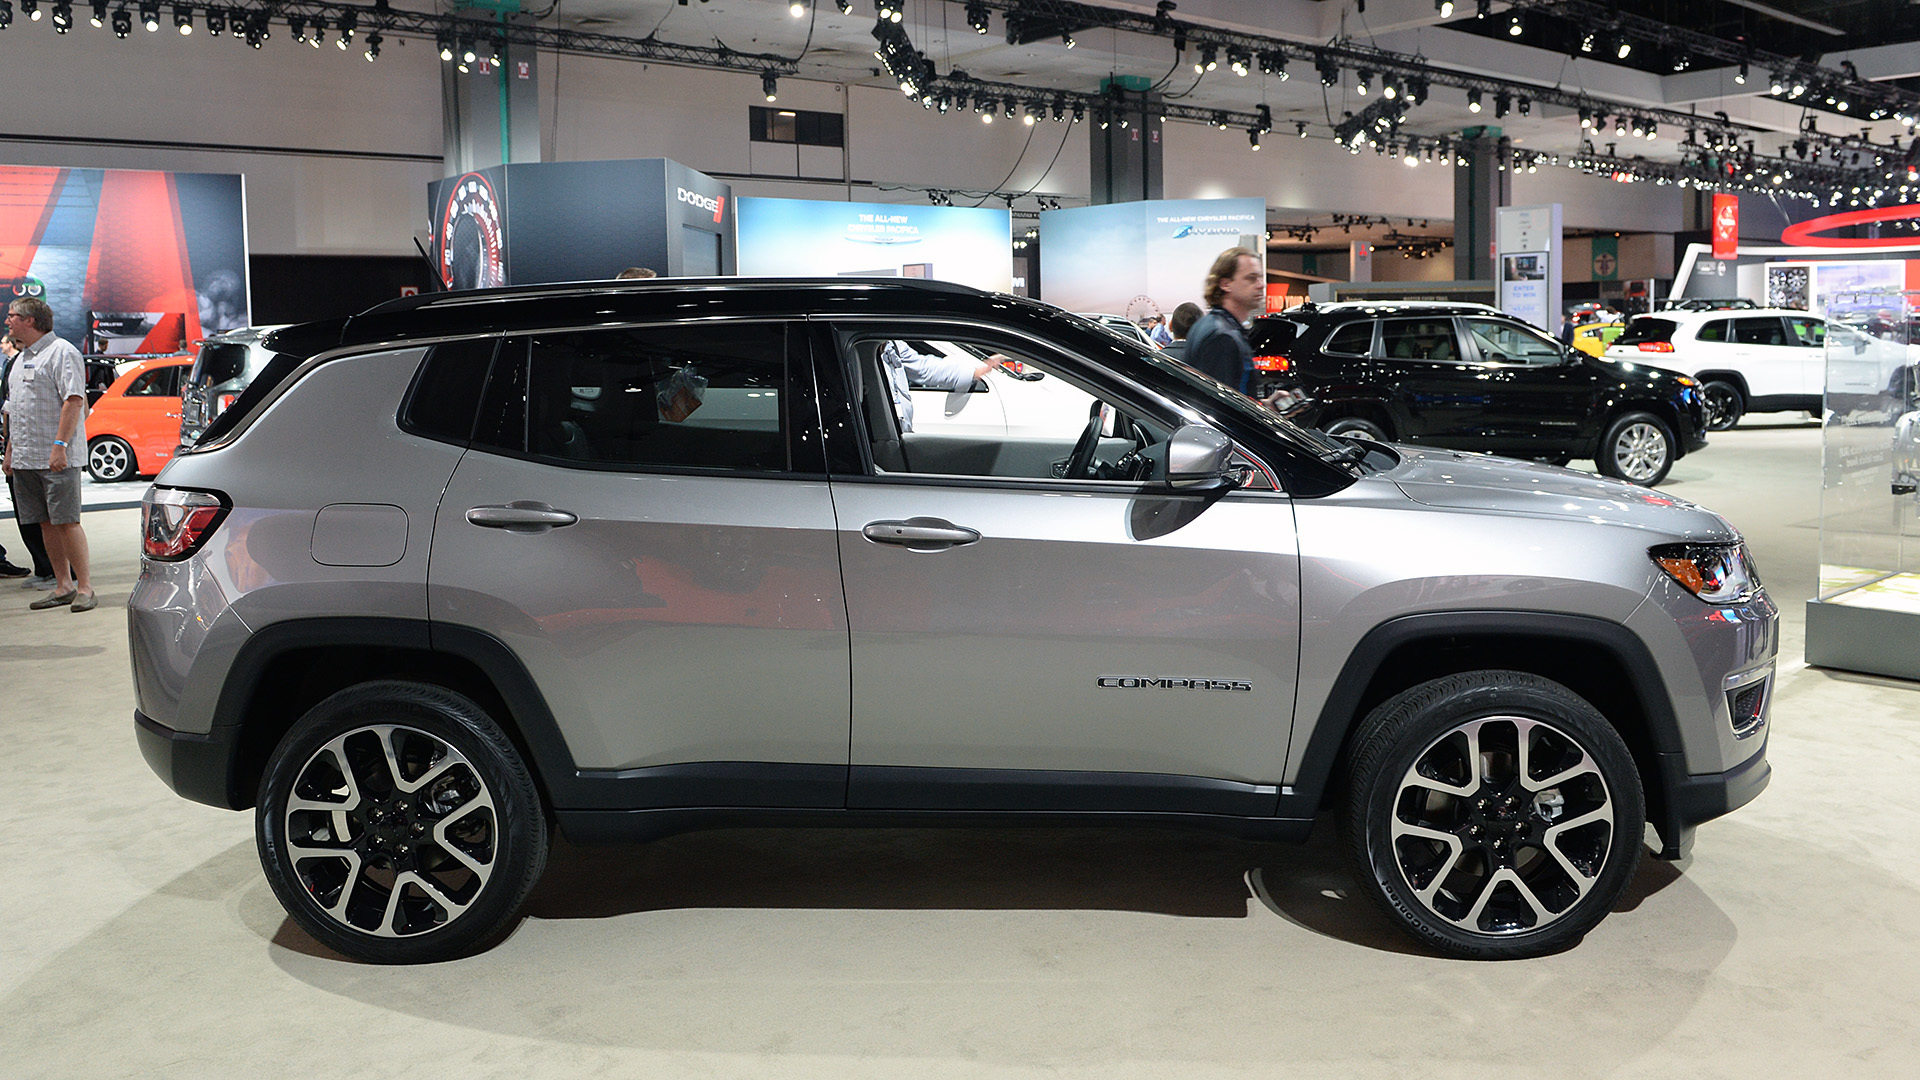 abbastanza 2017 Jeep Compass is finally a compact crossover worthy of its  SH83